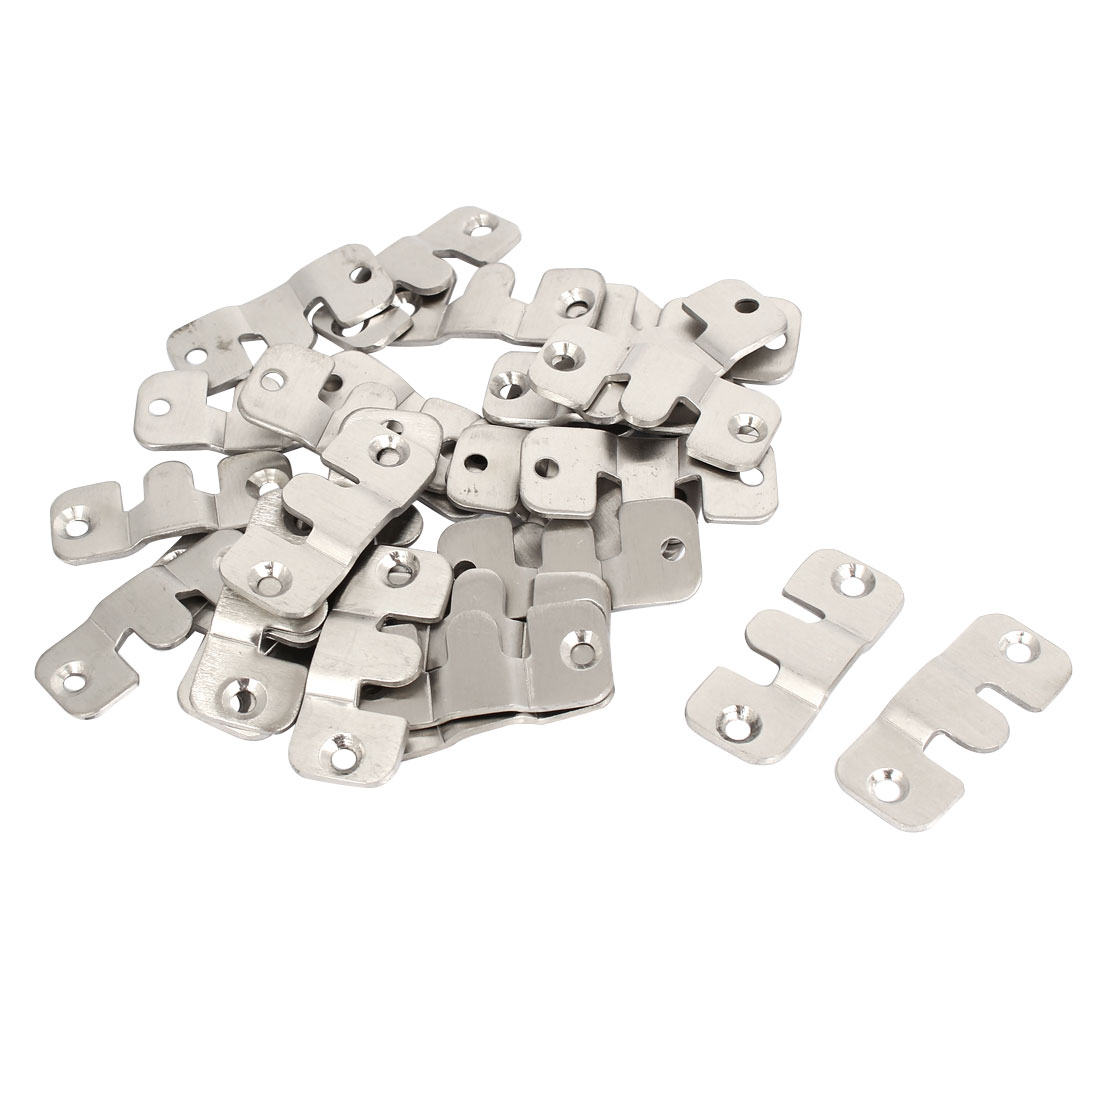 Sofa Furniture Photo Frame Interlocking Connector 44mm Length 30pcs